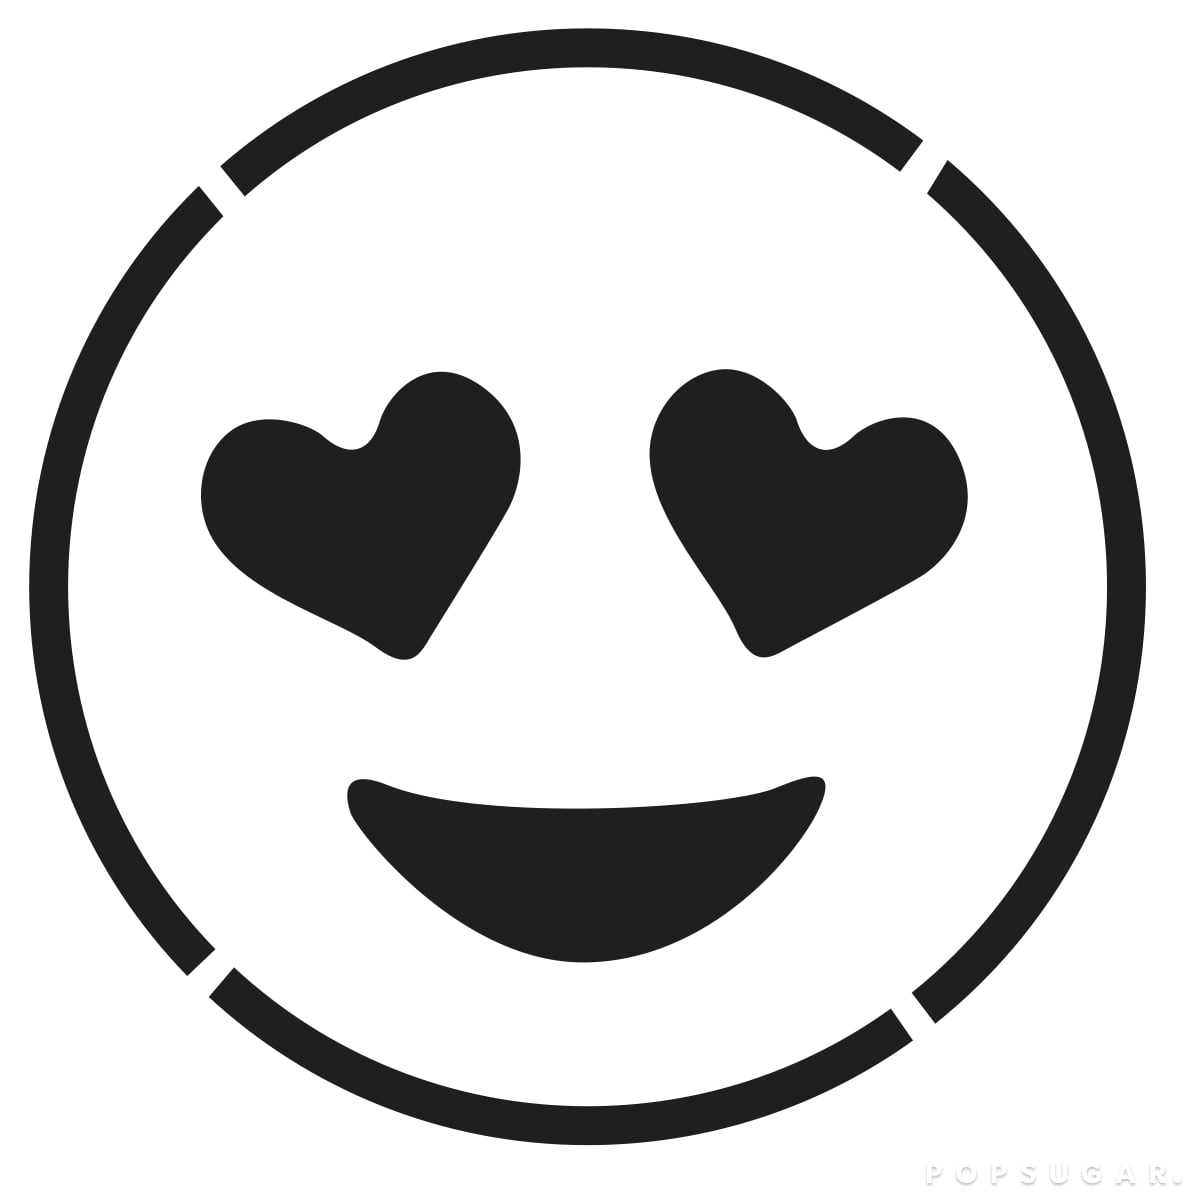 Smiling face with heart shaped eyes emoji templates by morgan pugh 49 free templates for the for Emoji pumpkin stencil